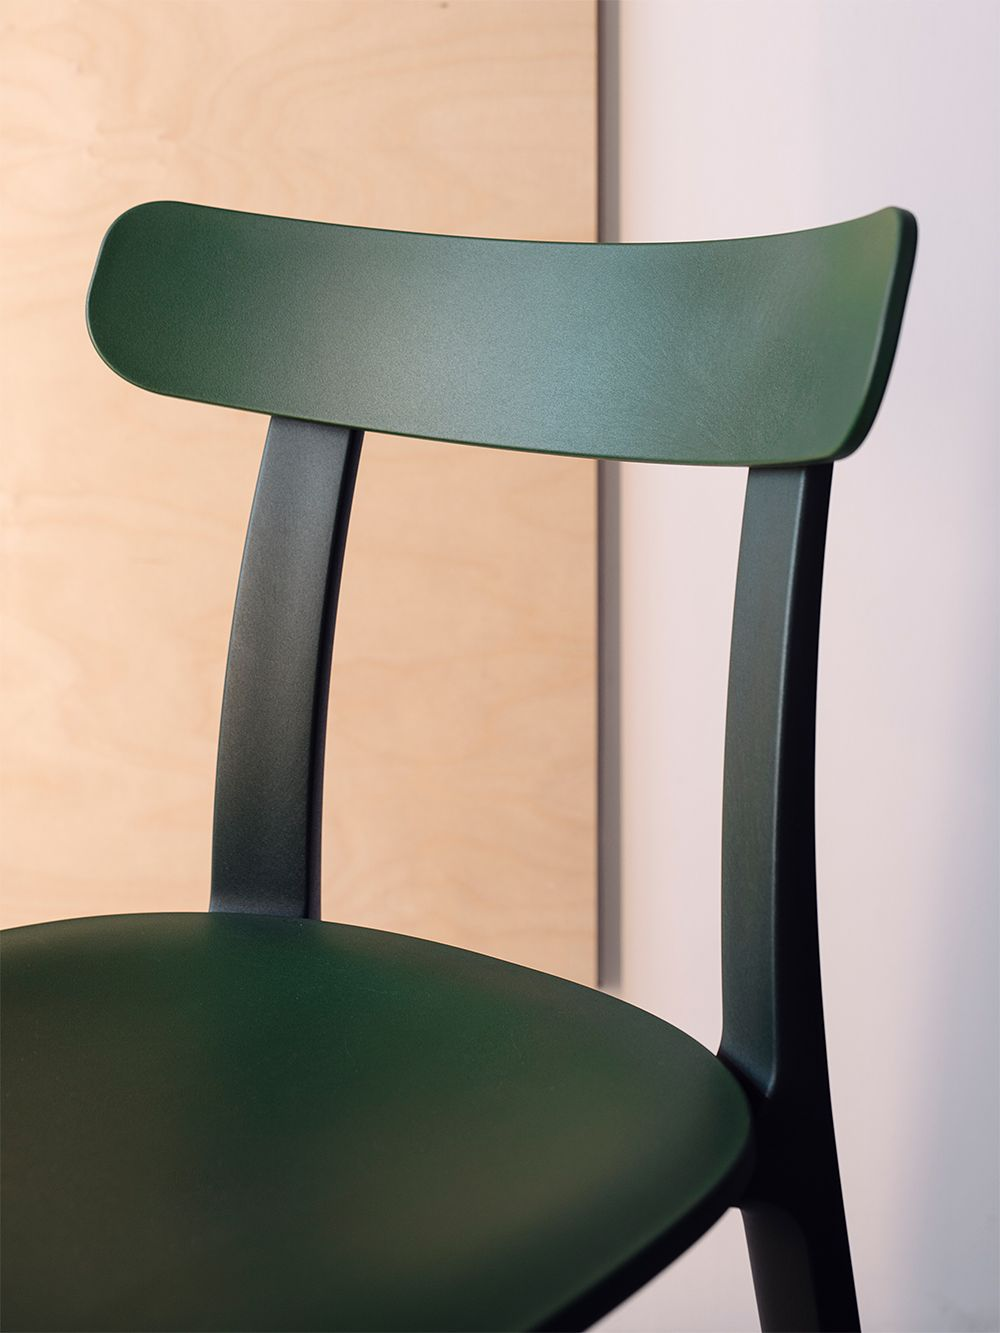 Vitra's All Plastic Chair in ivy green